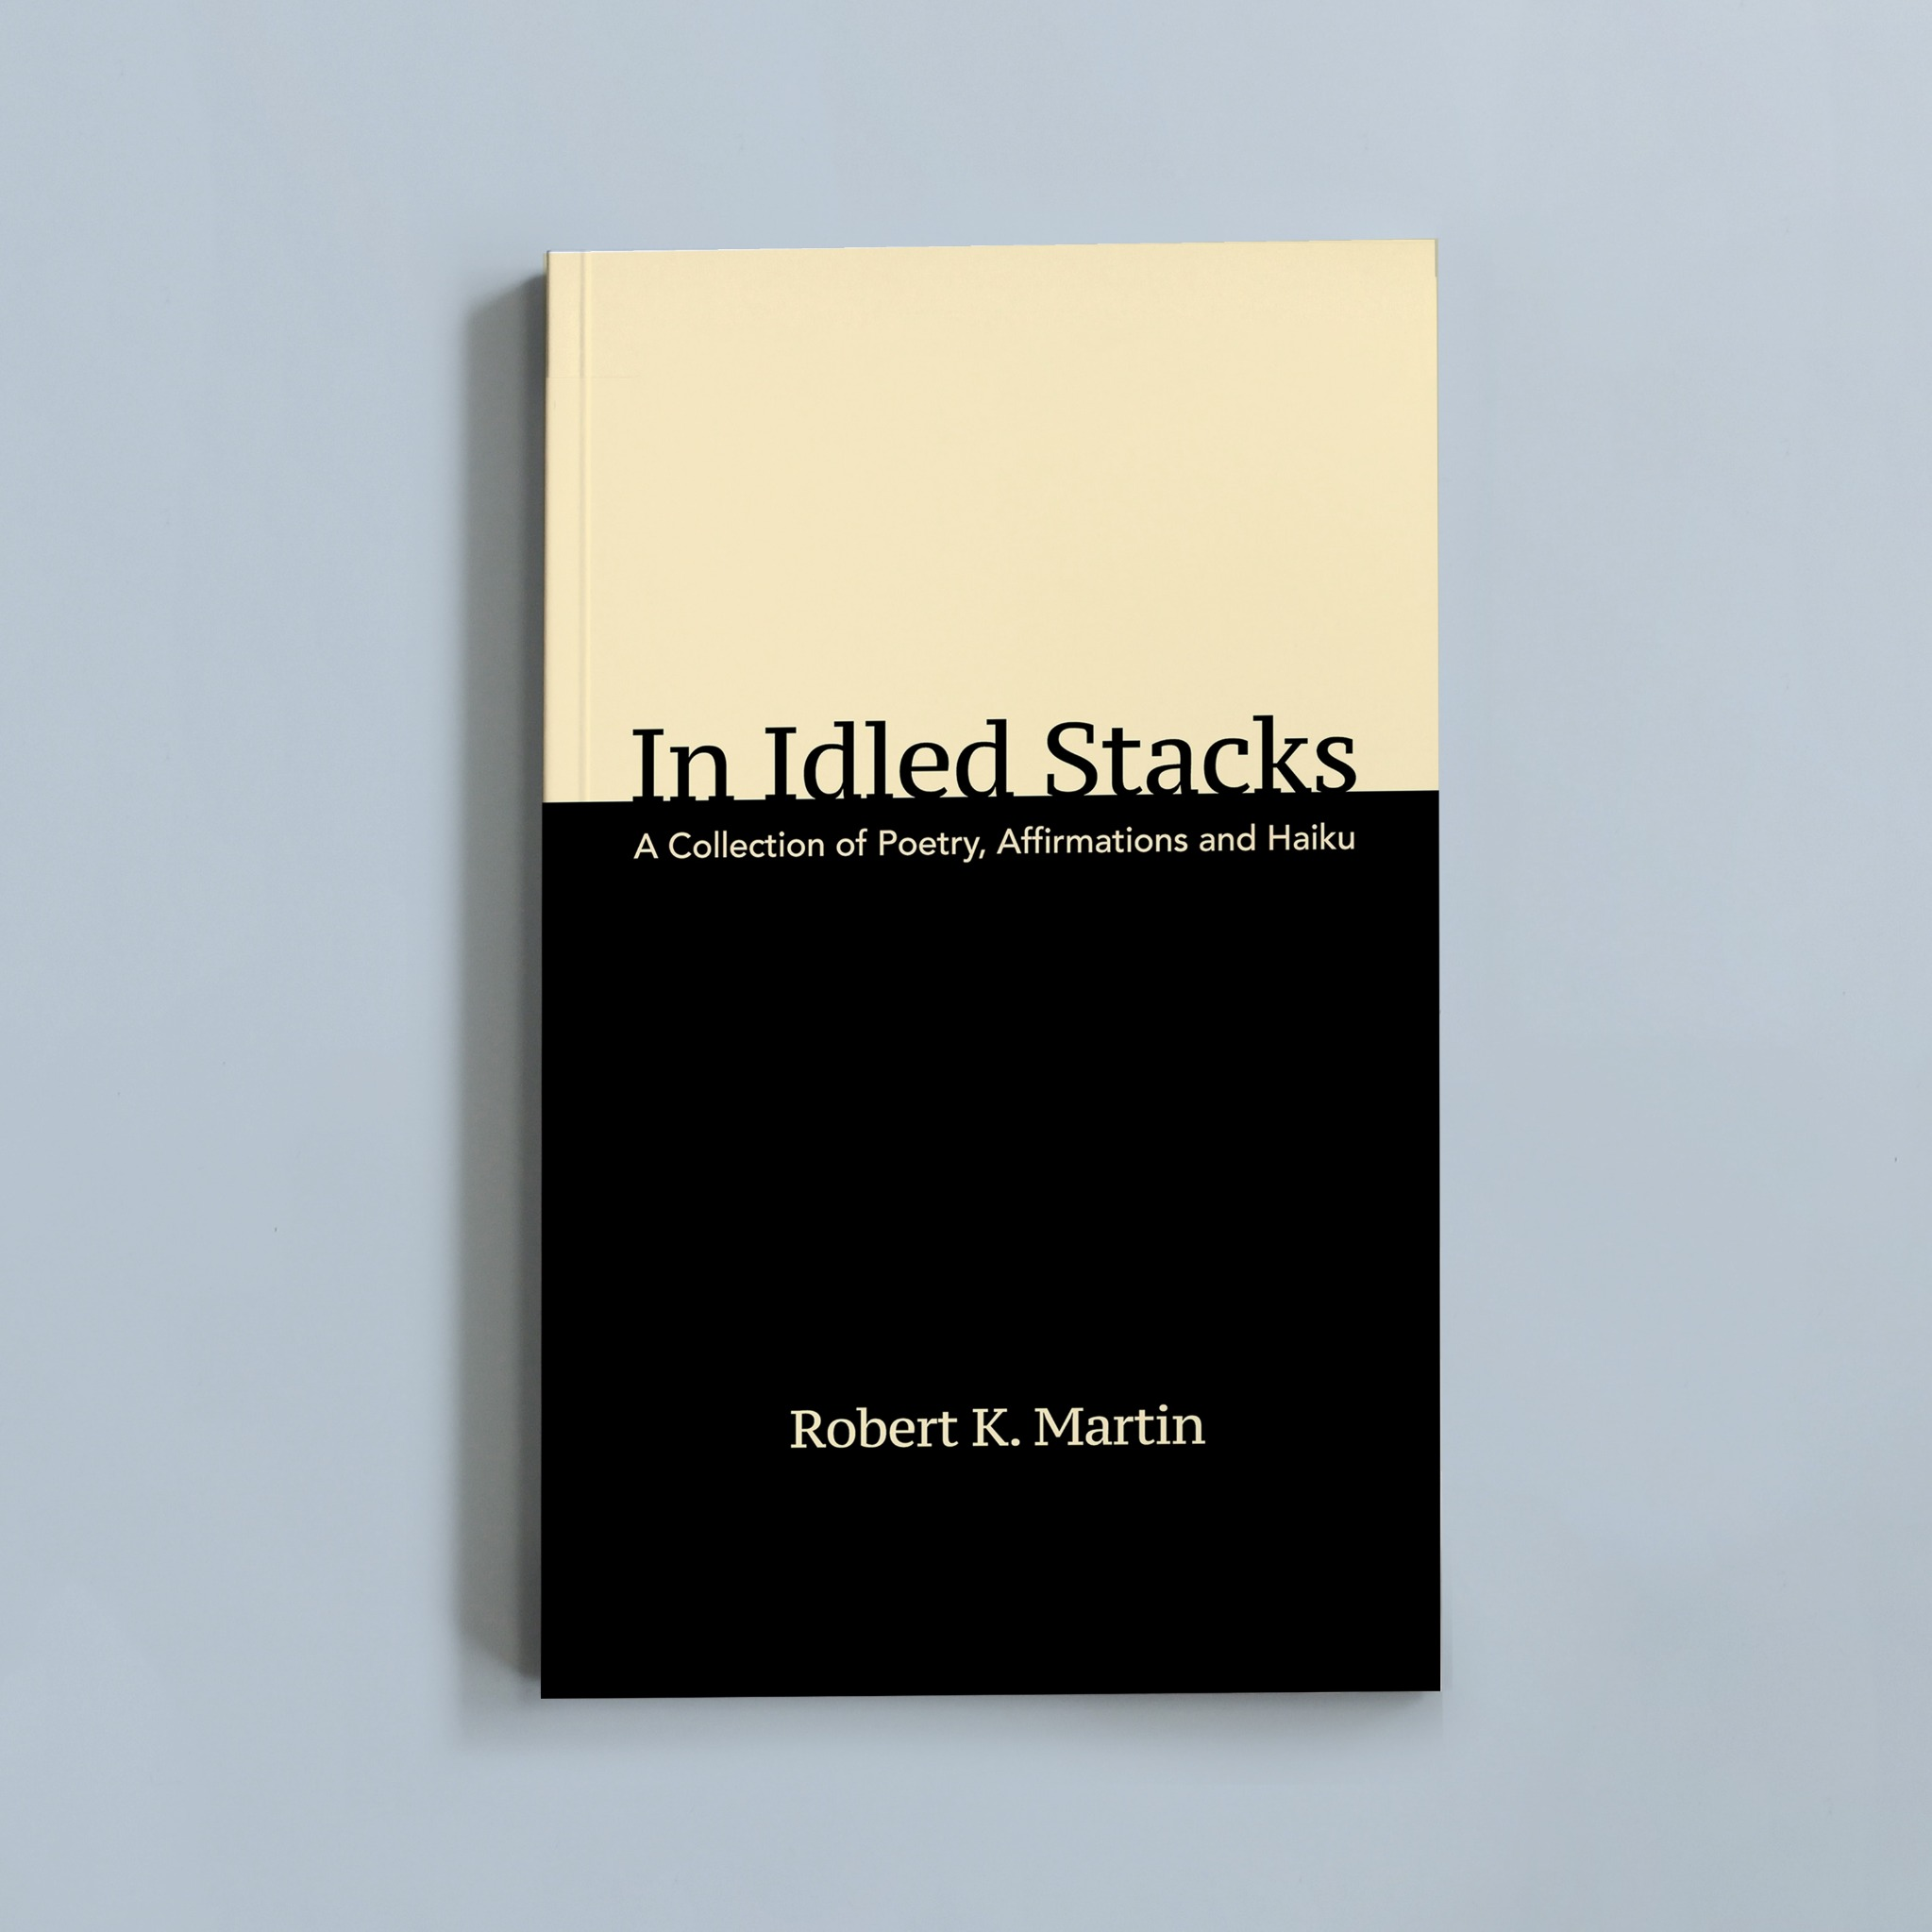 In Idled Stacks: A Collection of Poetry, Affirmations, and Haiku